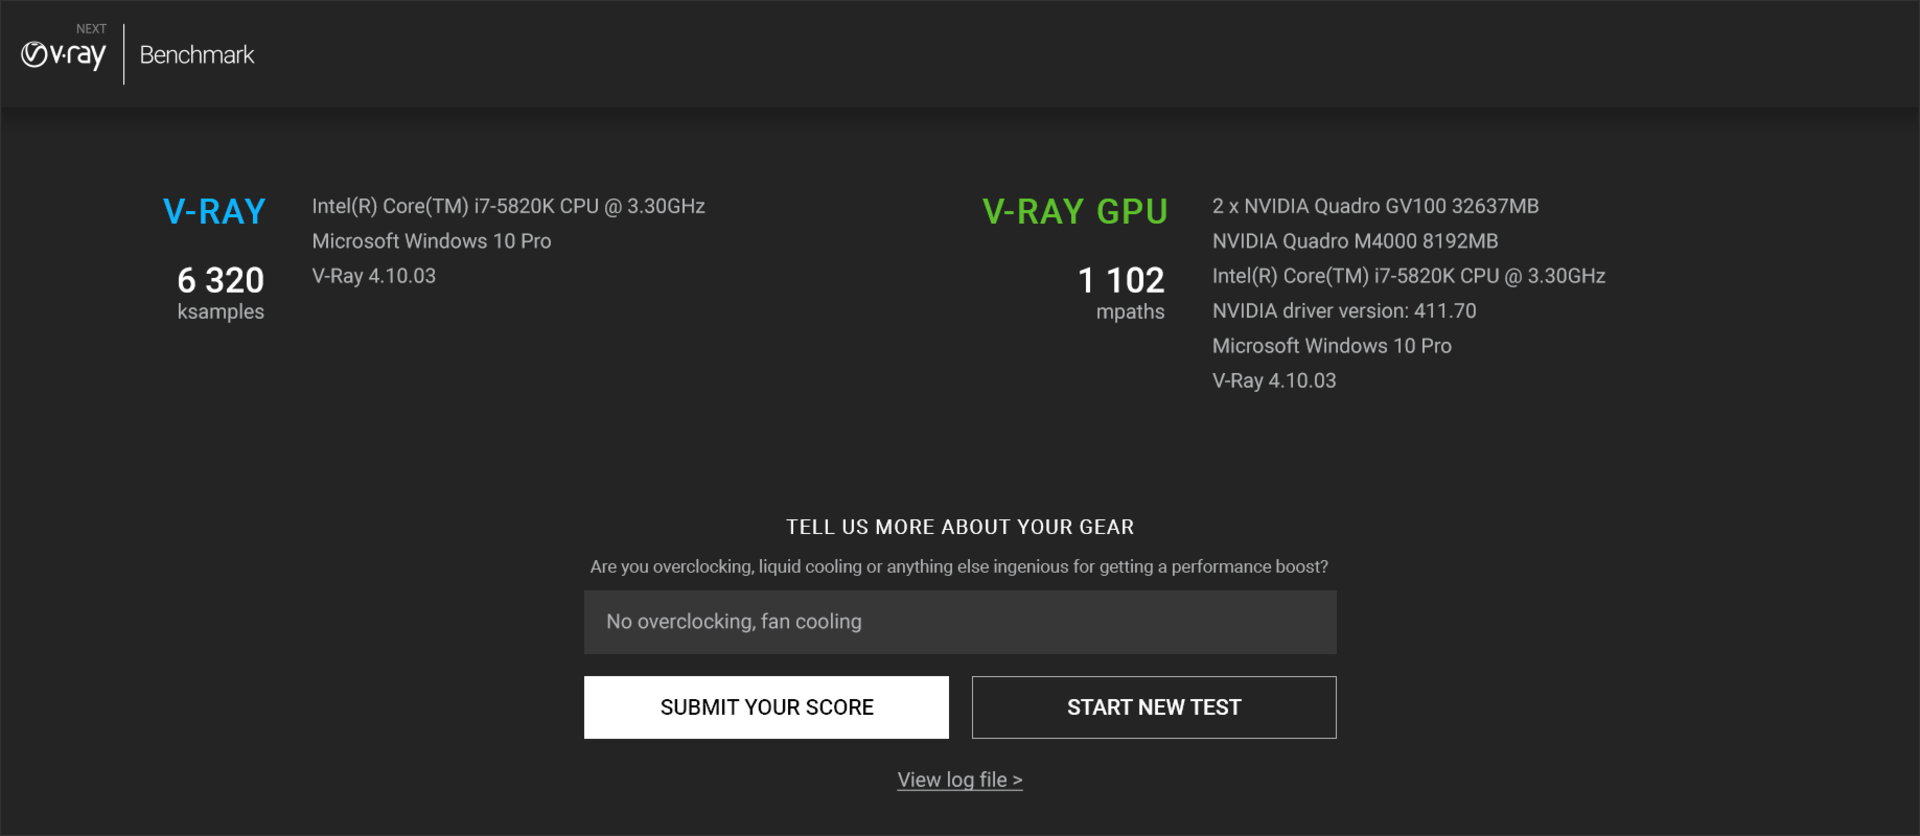 V-Ray Benchmark – Standalone app for testing CPU and GPU render